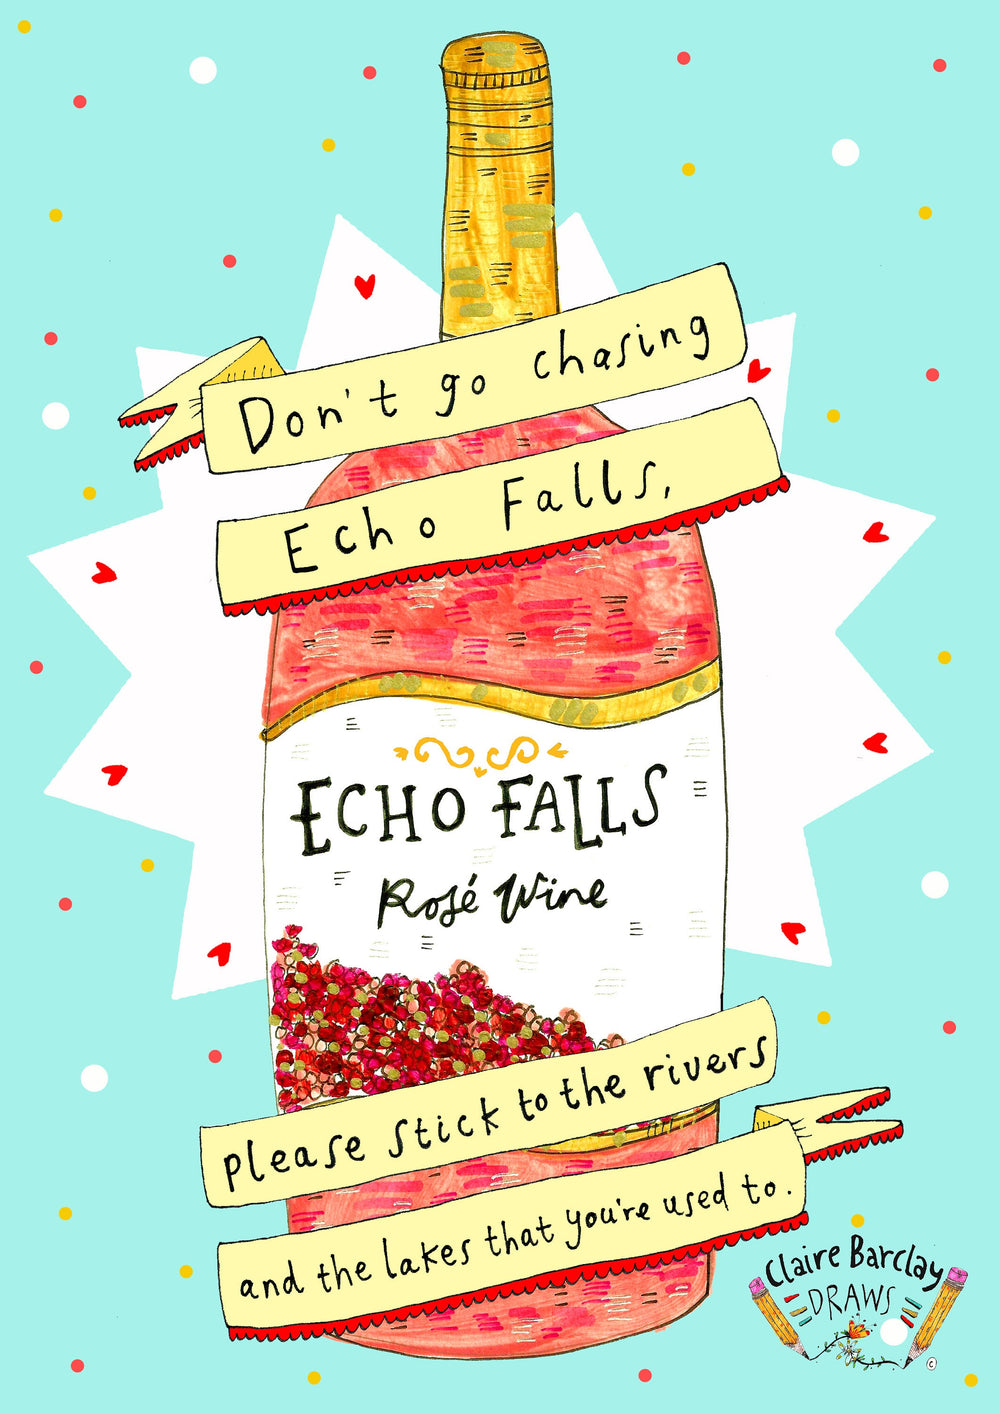 Don't go Chasing Echo Falls Illustrated Tote Bag, Fun TLC Pun Cotton Shopper Bag